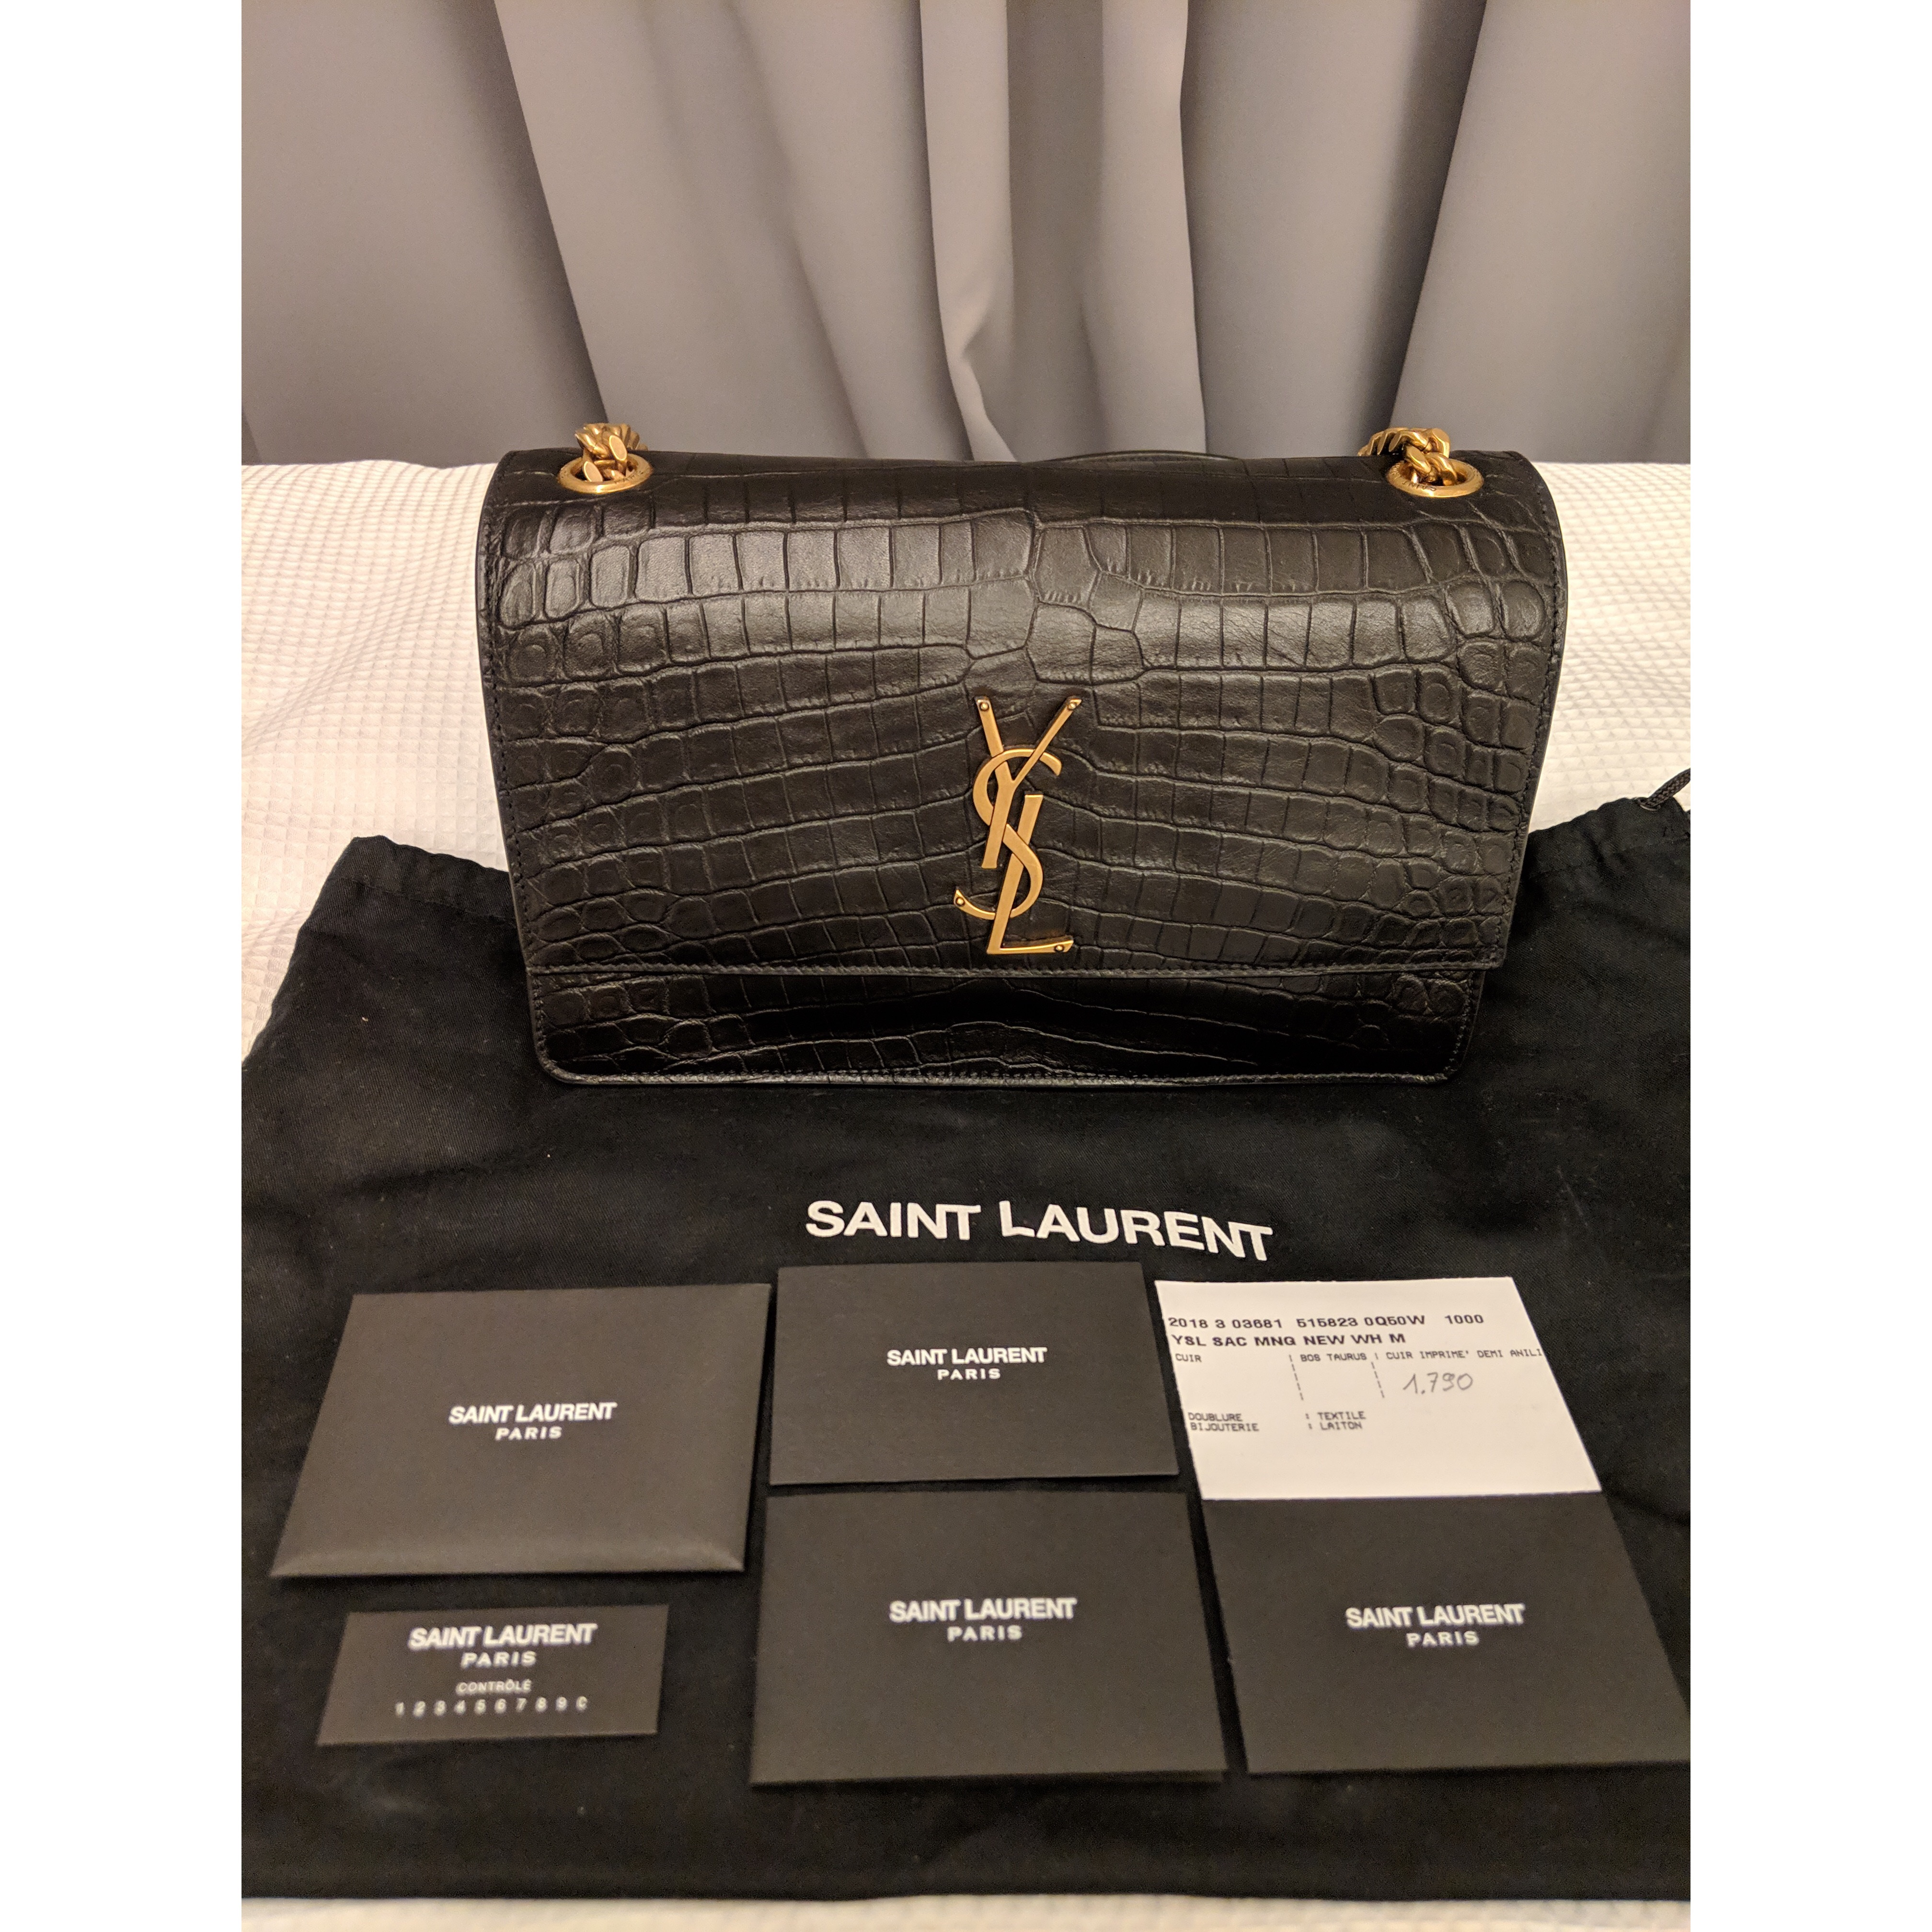 a1d7d3a89d7 YSL Sunset Supple Medium in Croc embossed leather Measurements :  25.5x15.5x11 CM Condition : Brand New & Unused Color/Material : Calf skin  leather Mother's ...